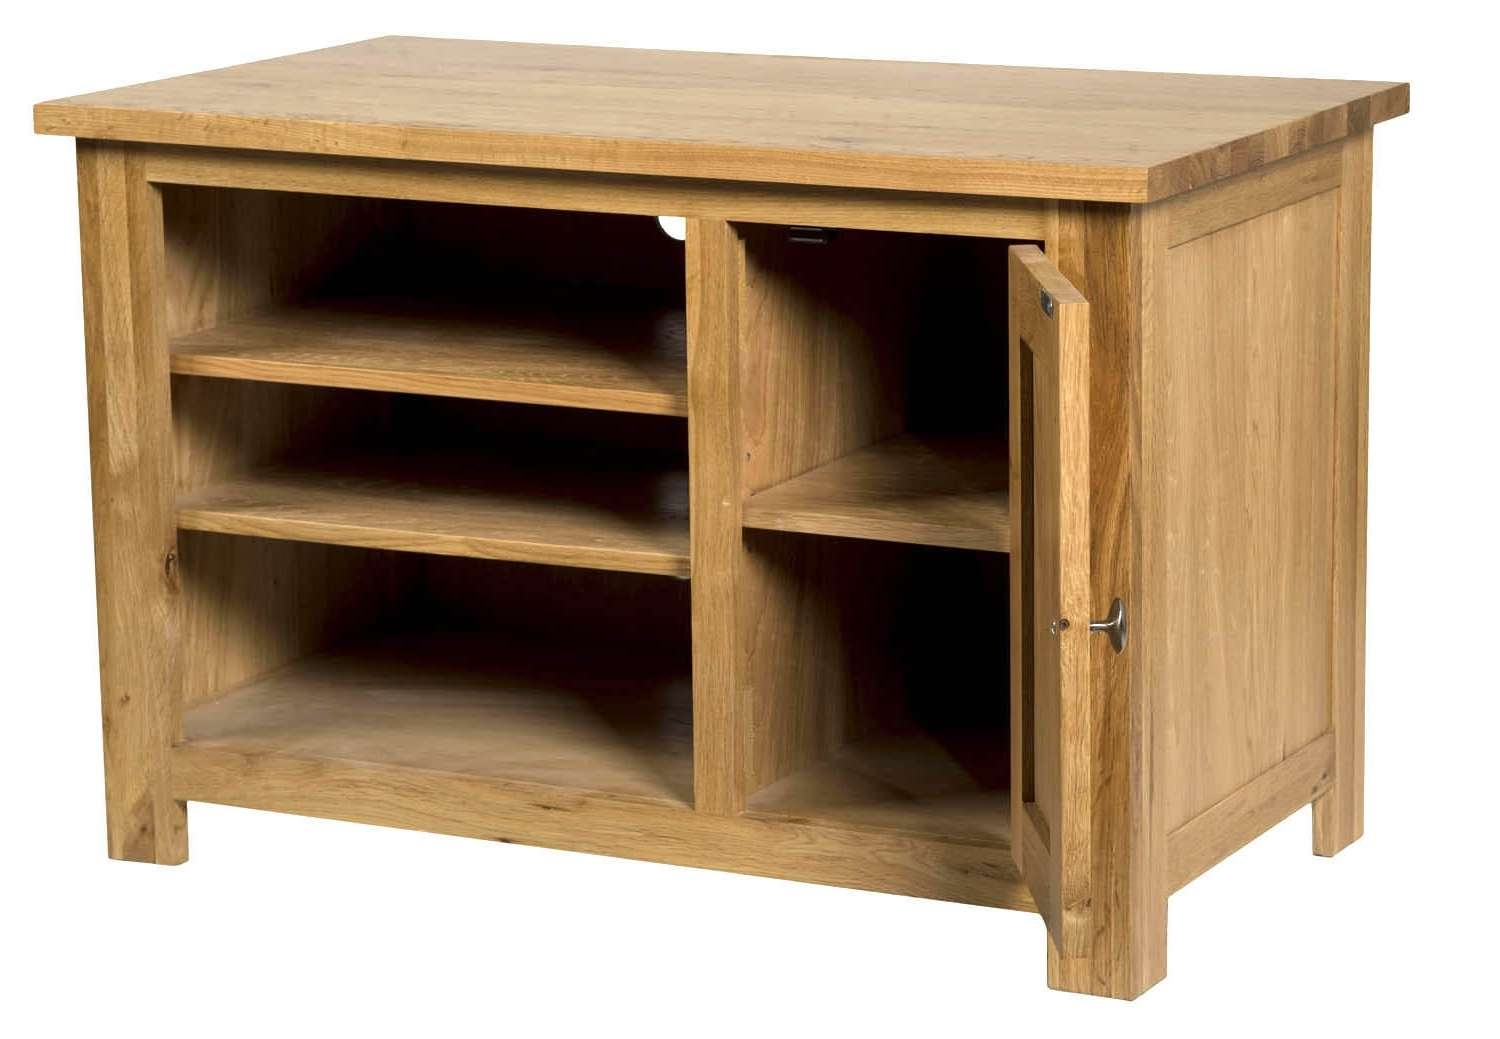 Waverly Oak Small Compact Tv Stand With Cabinet Storage | Hallowood Pertaining To Small Oak Tv Cabinets (View 20 of 20)